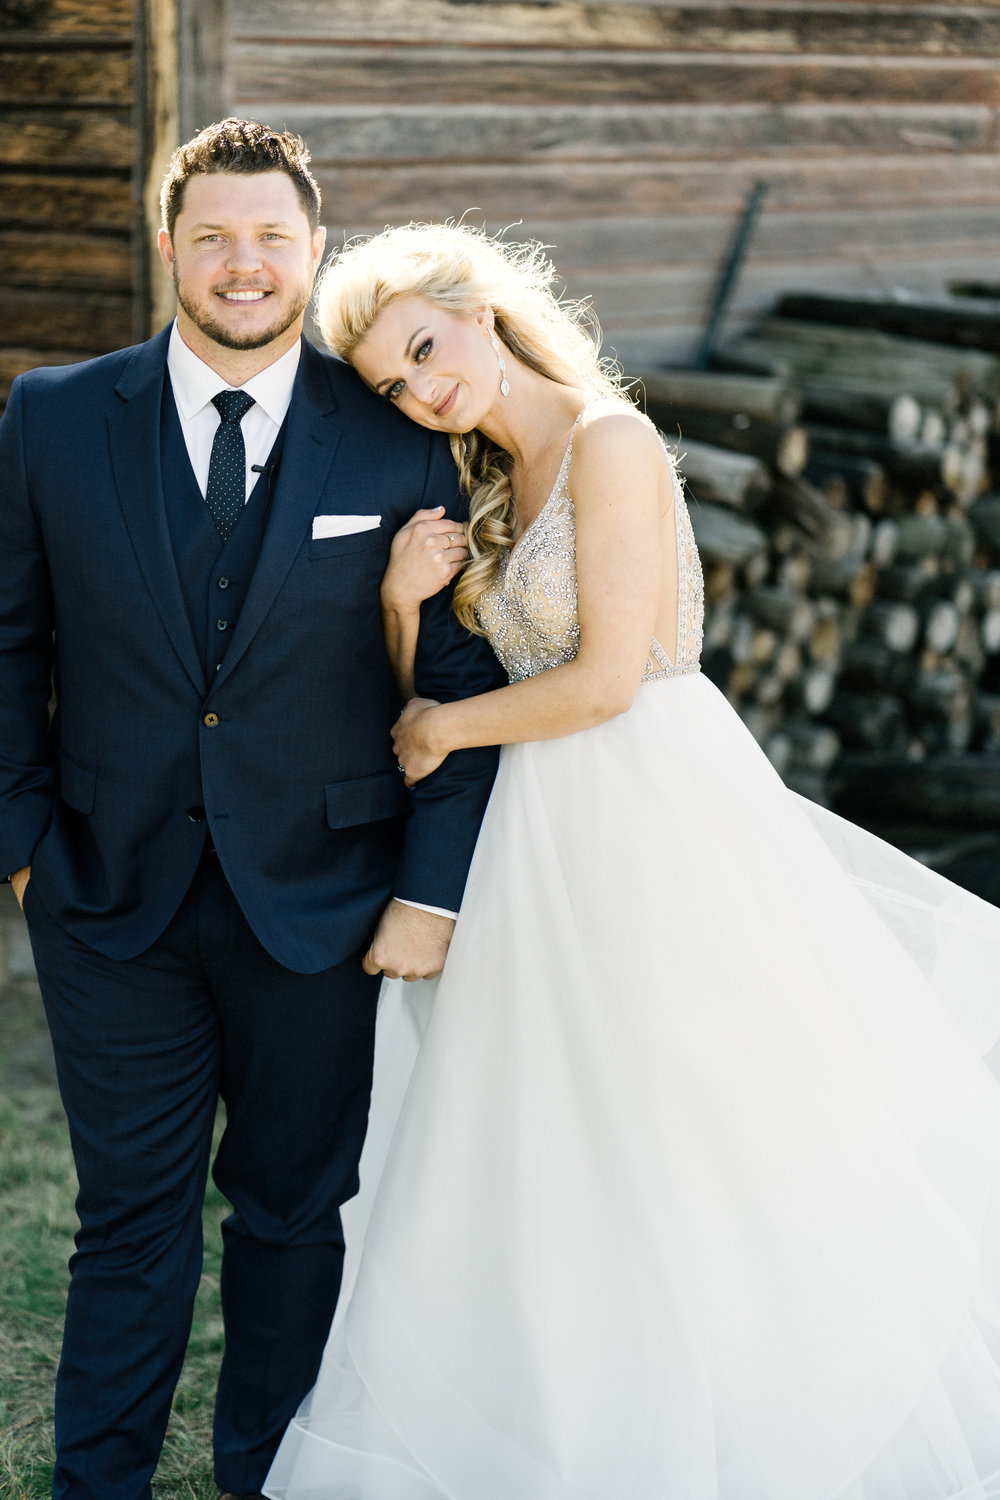 jamie & nathan - SPRUCE MOUNTAIN RANCH, LARSKPUR CO.Photography by Steve Stanton